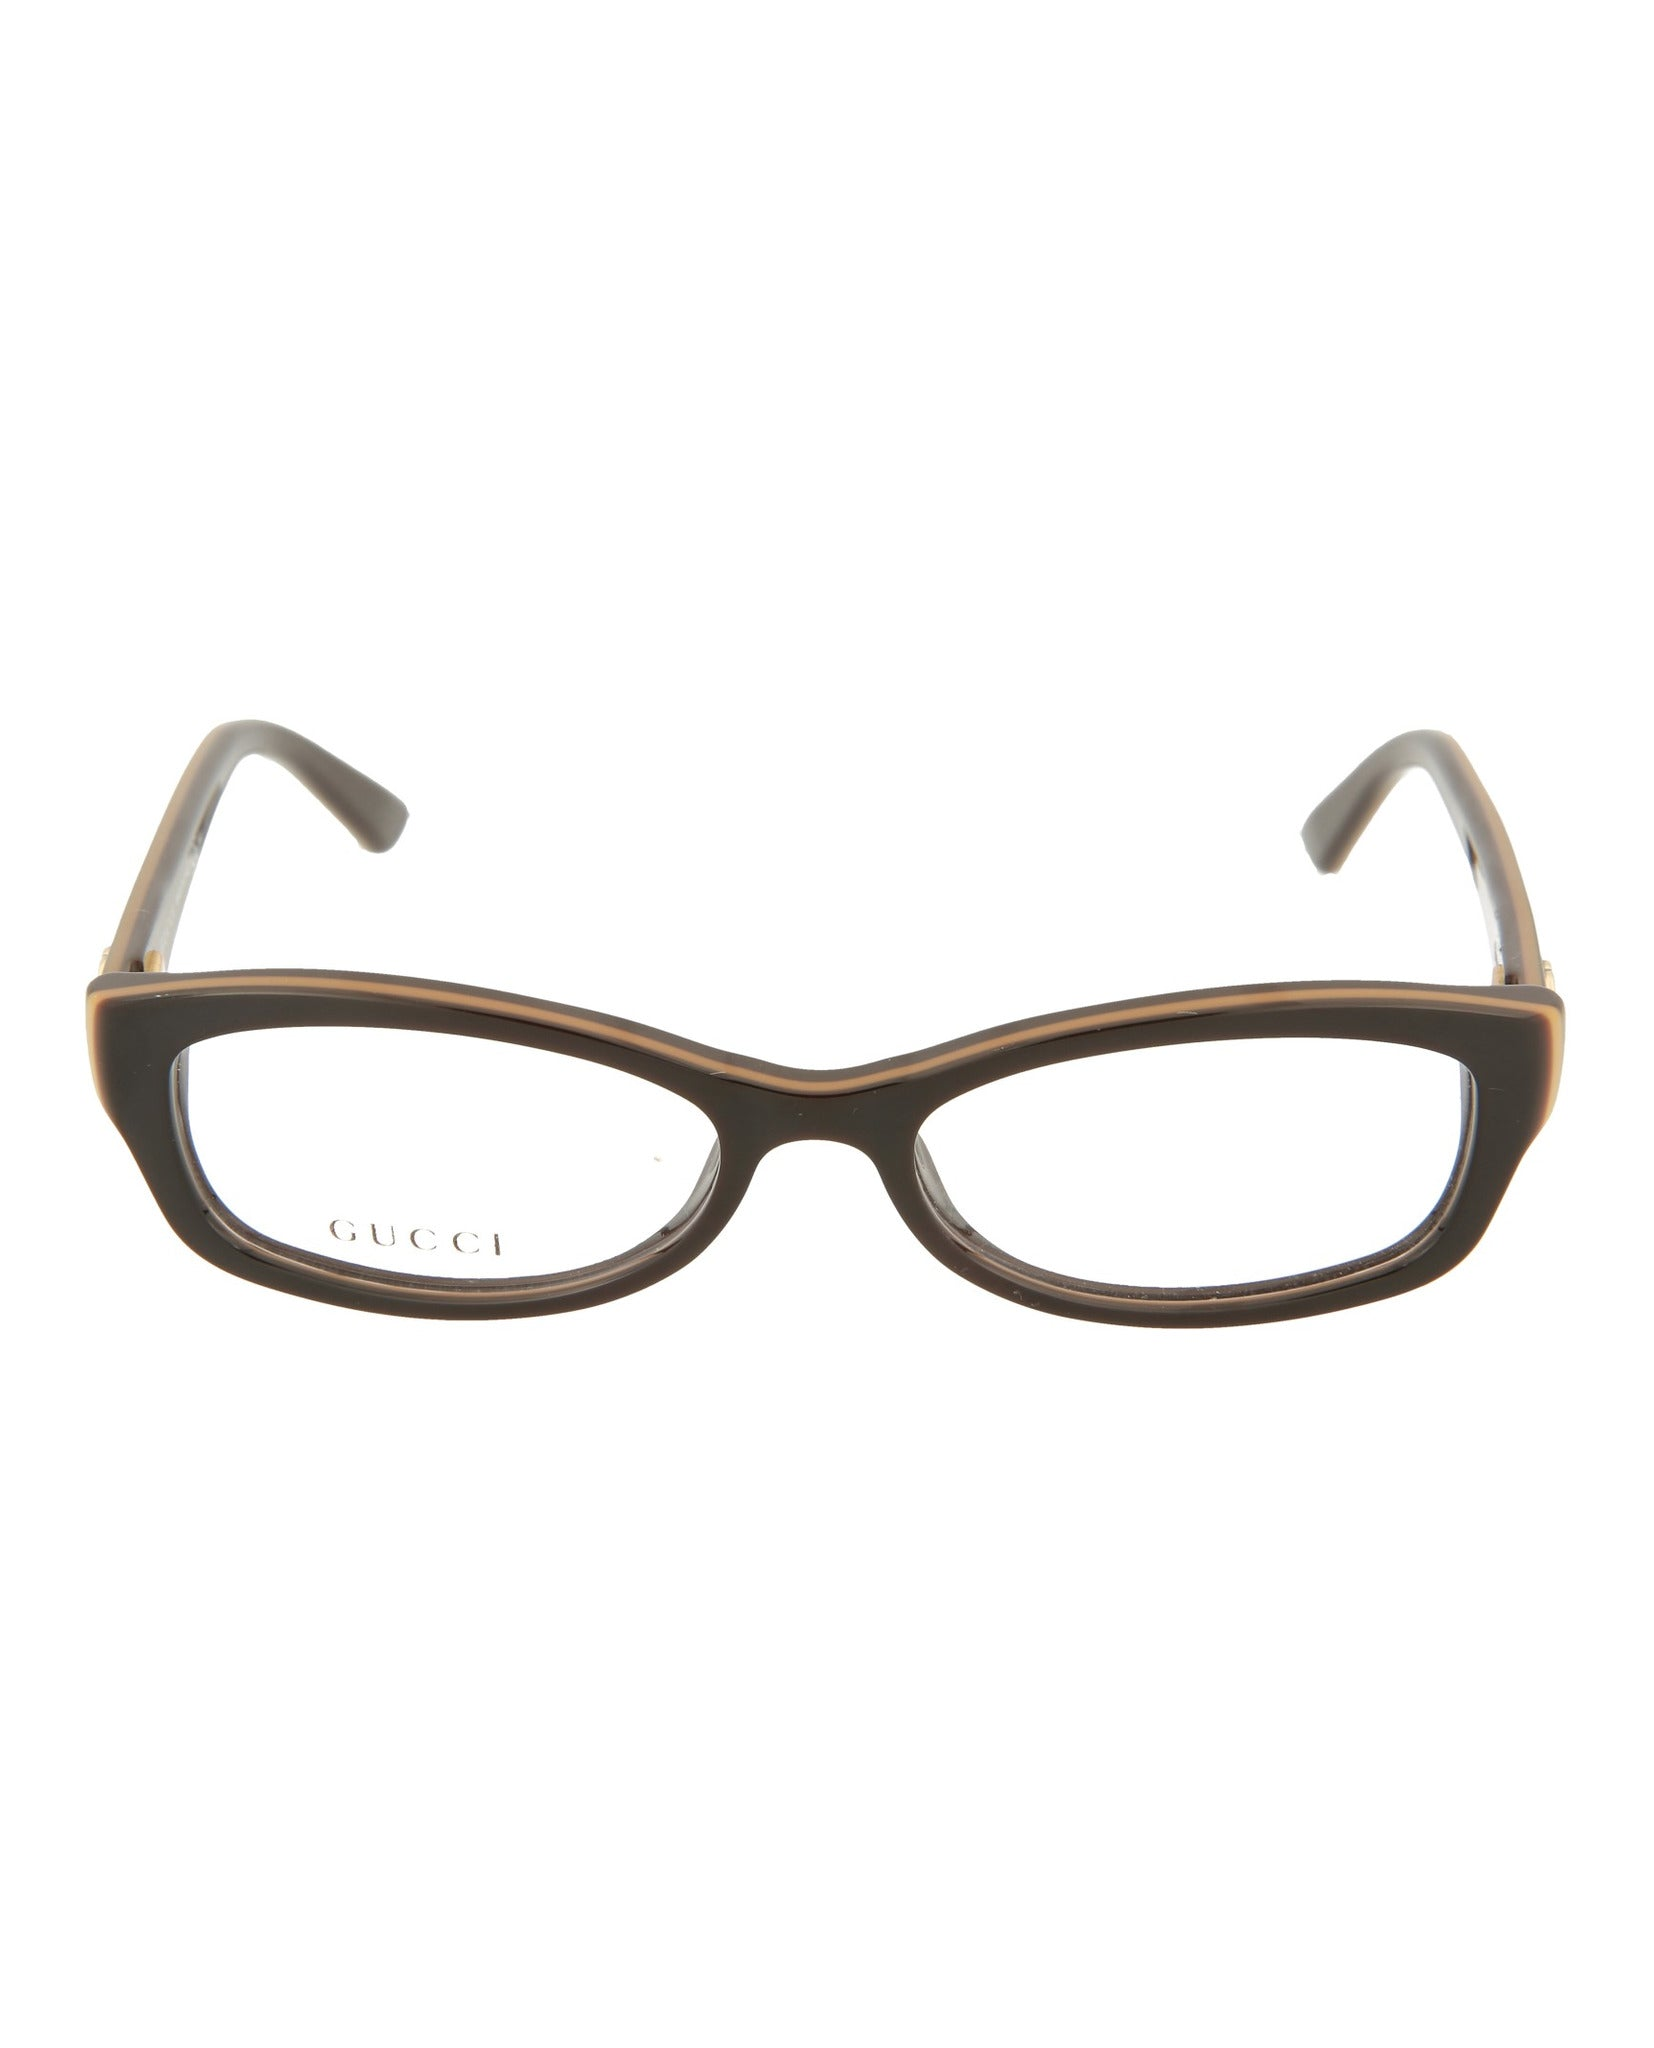 408d6ce602e Gucci Womens Round Oval Optical Frames